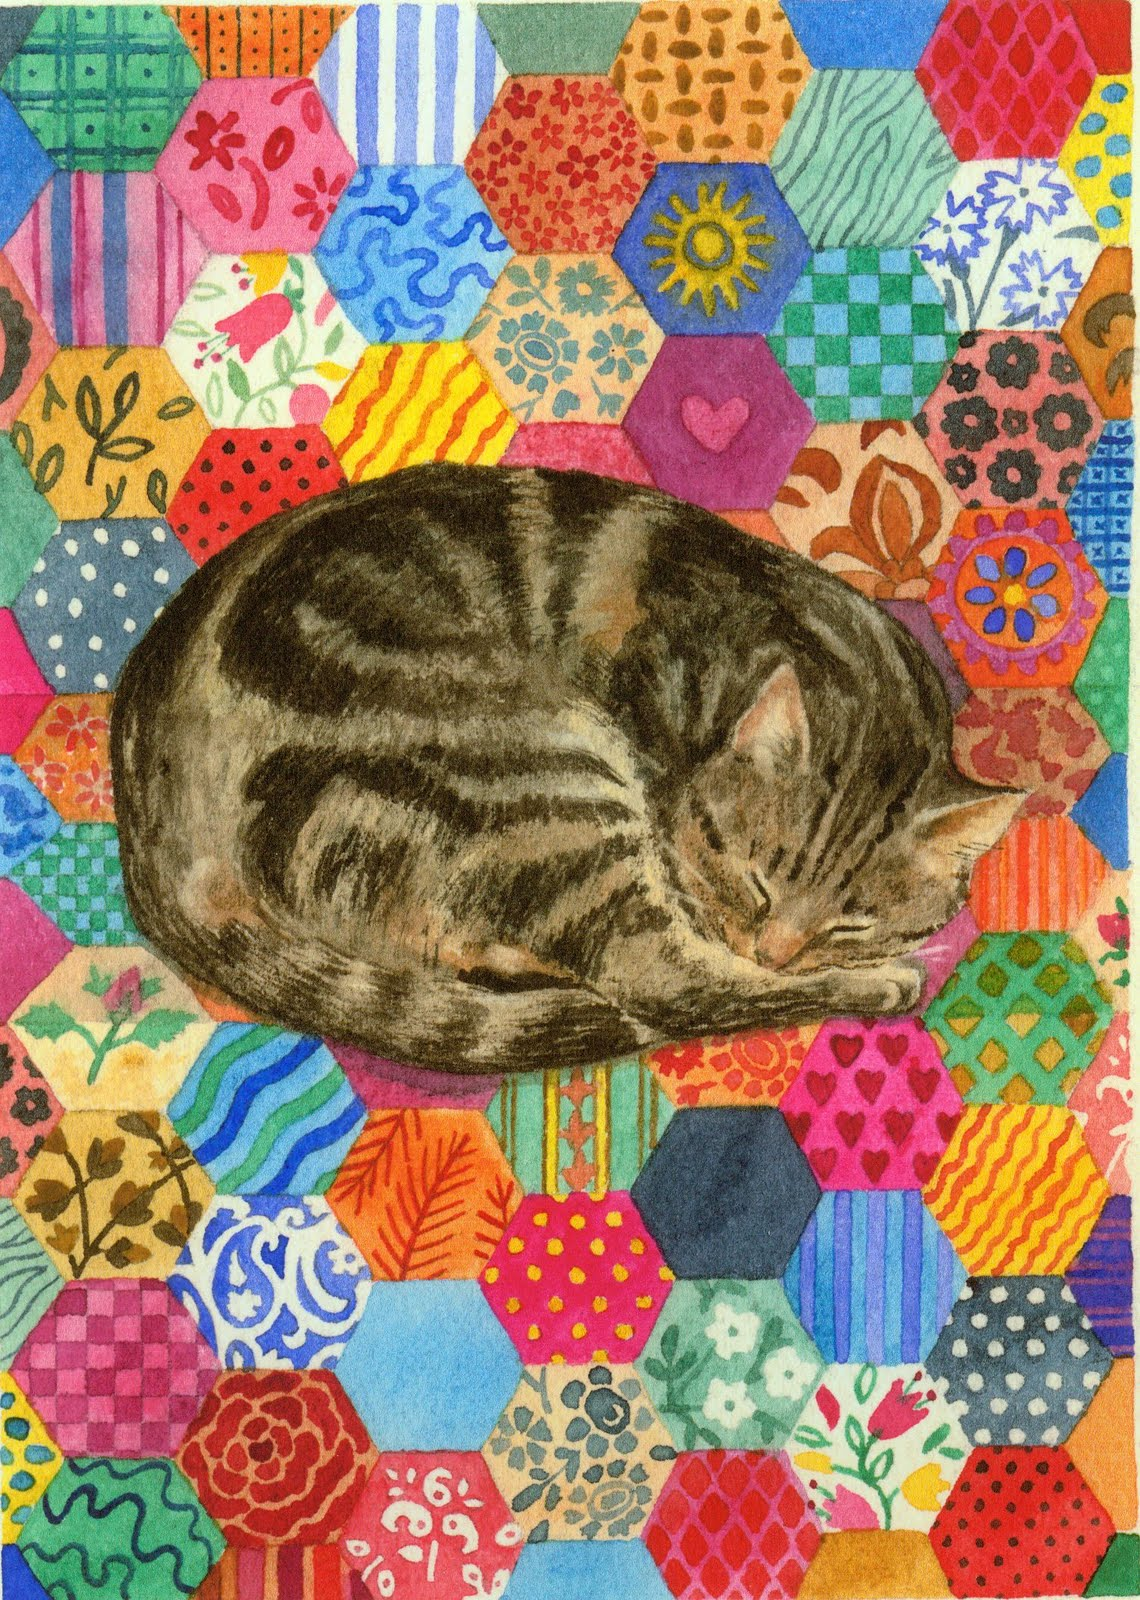 Jumping in Puddles: Patchwork Cat